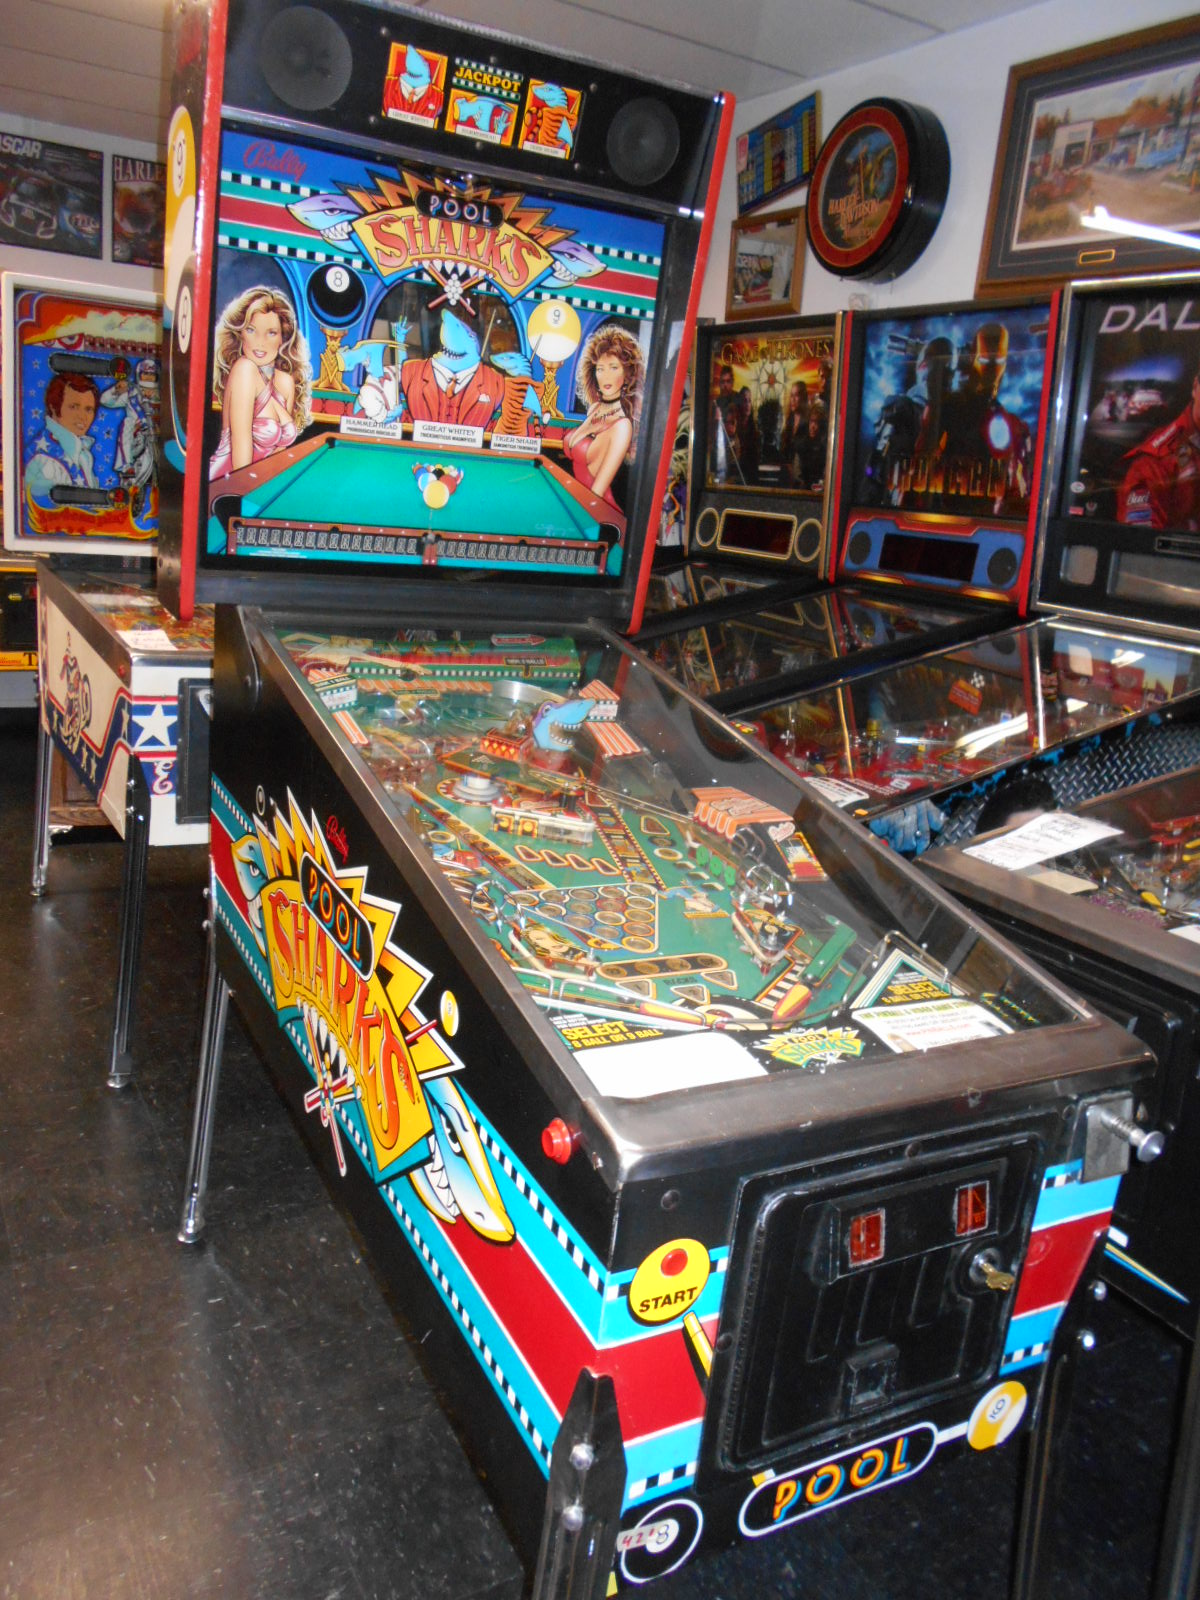 Free Shipping Sites >> POOL SHARKS Pinball Machine Game for sale by BALLY - LED DISPLAY - 2 GAMES IN 1 - PICK EIGHT OR ...